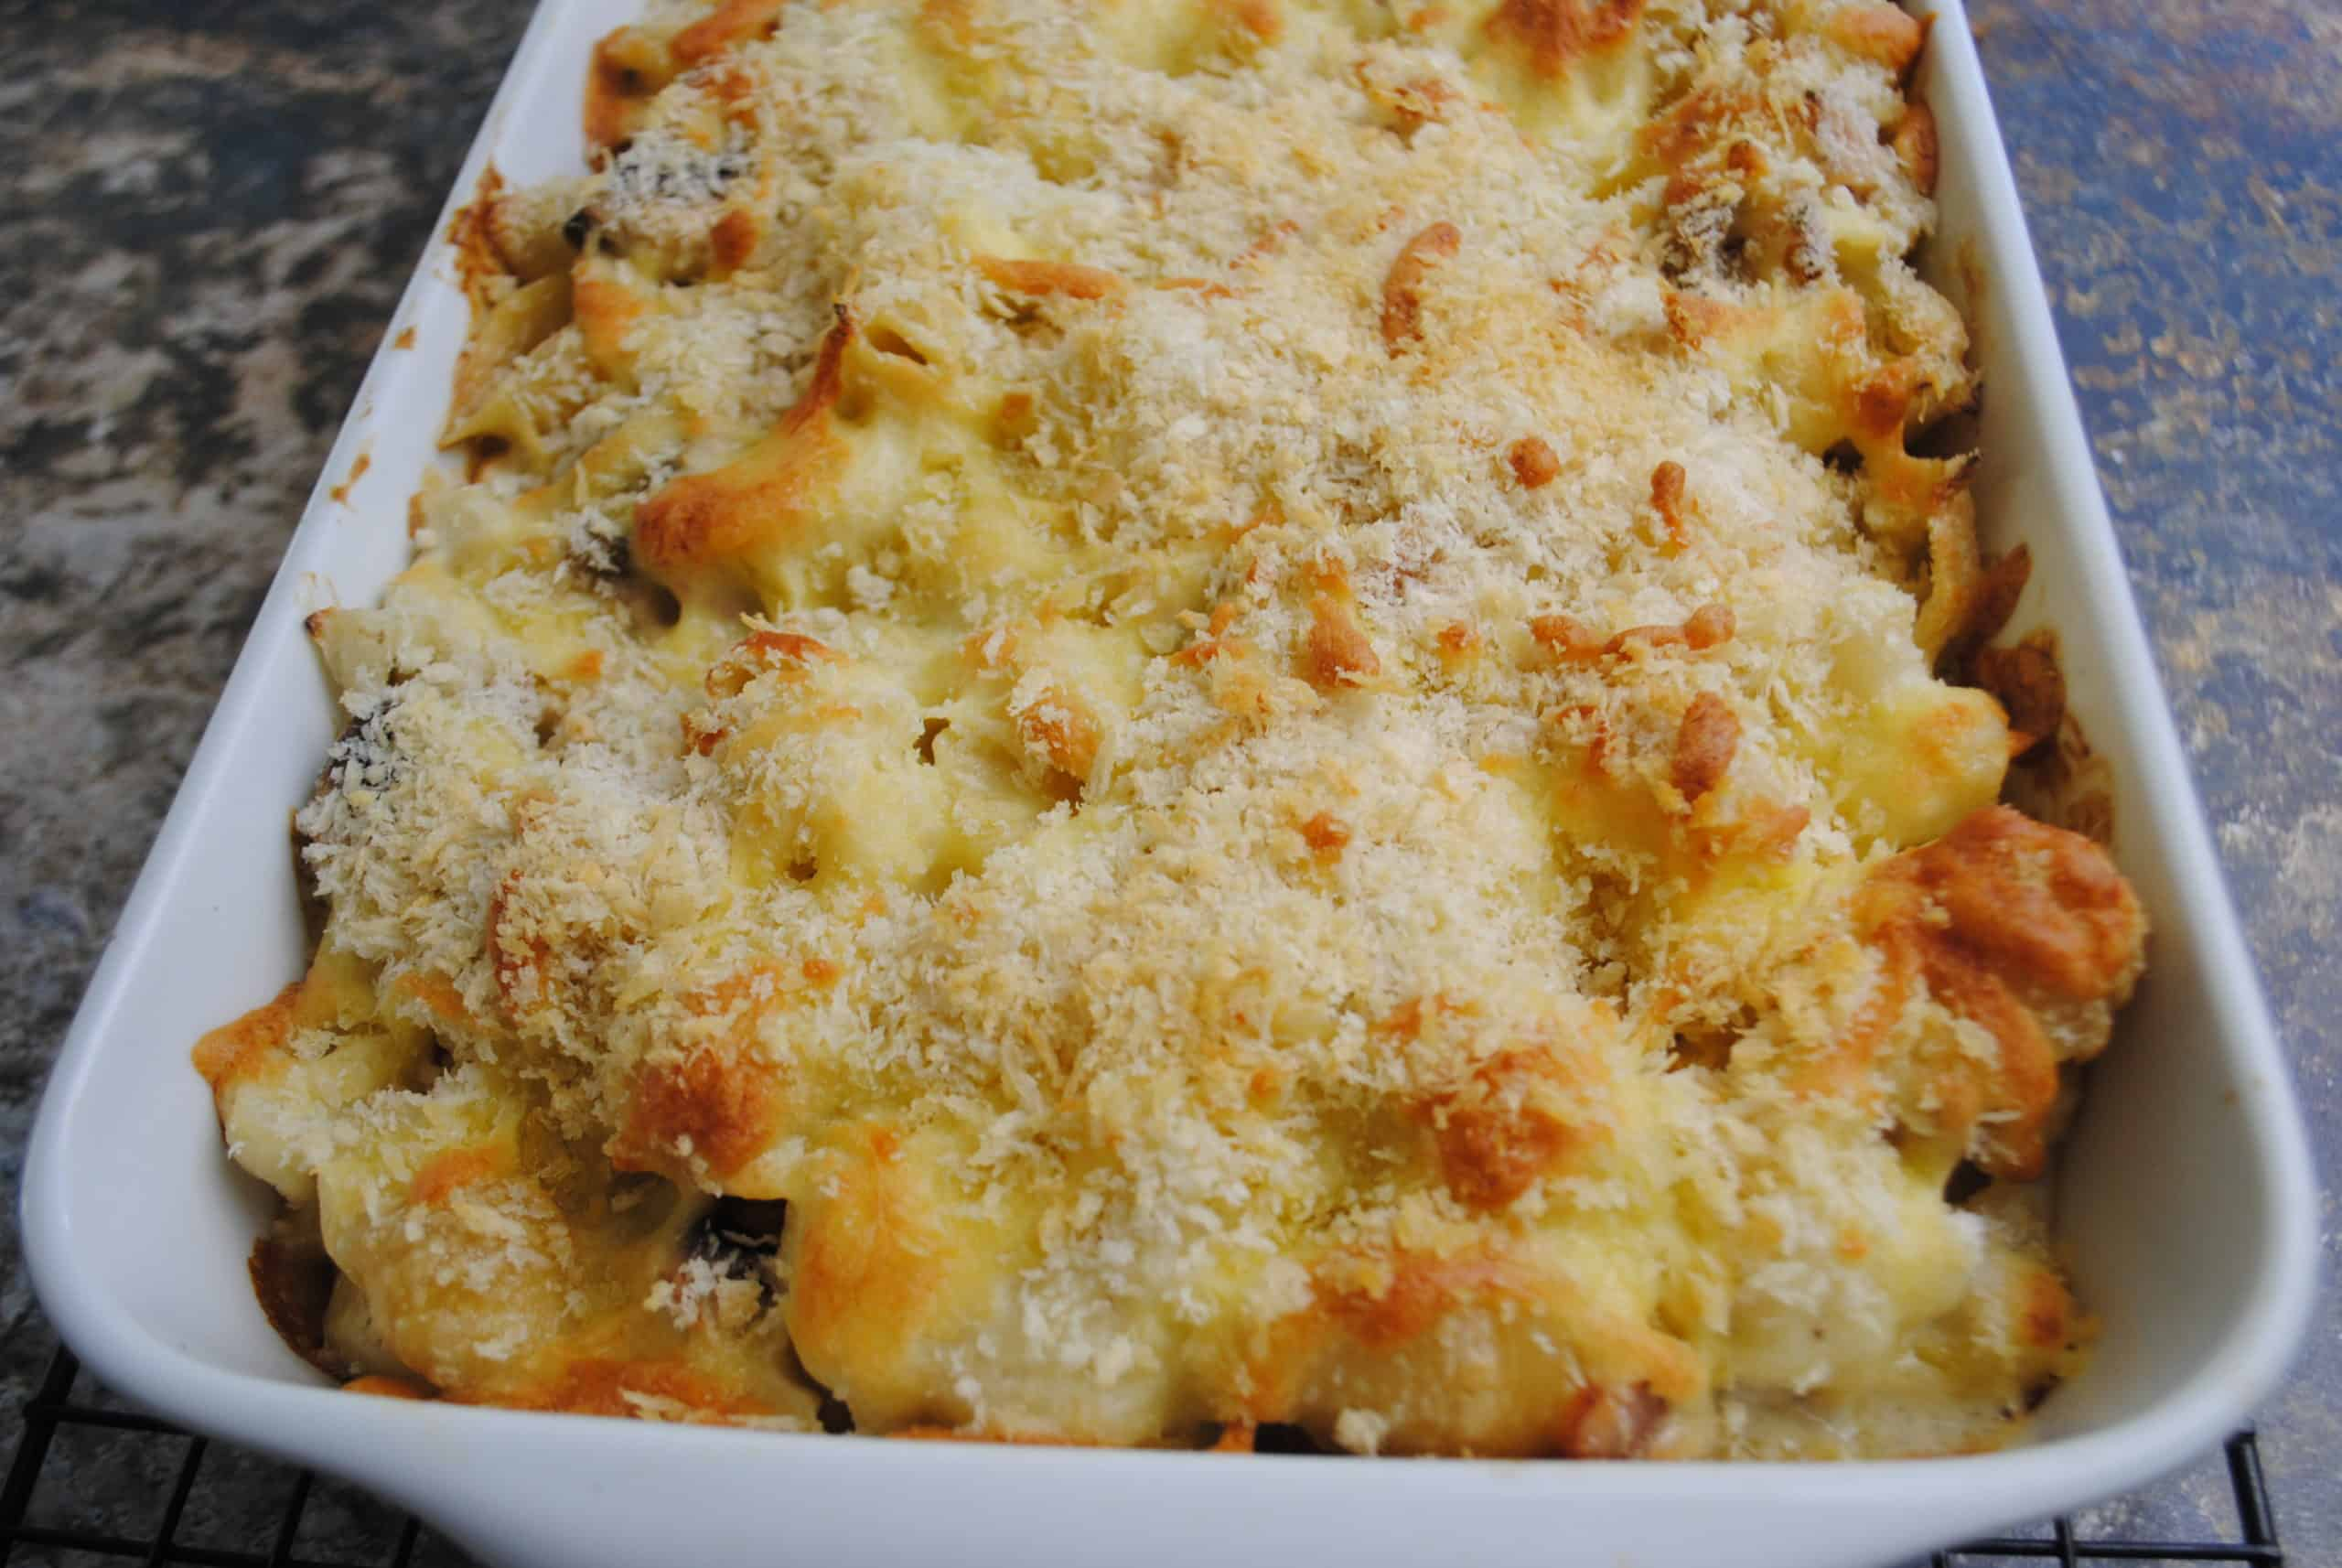 cauliflower pasta bake with bacon and mushrooms cooked in a white rectangular dish ready to serve